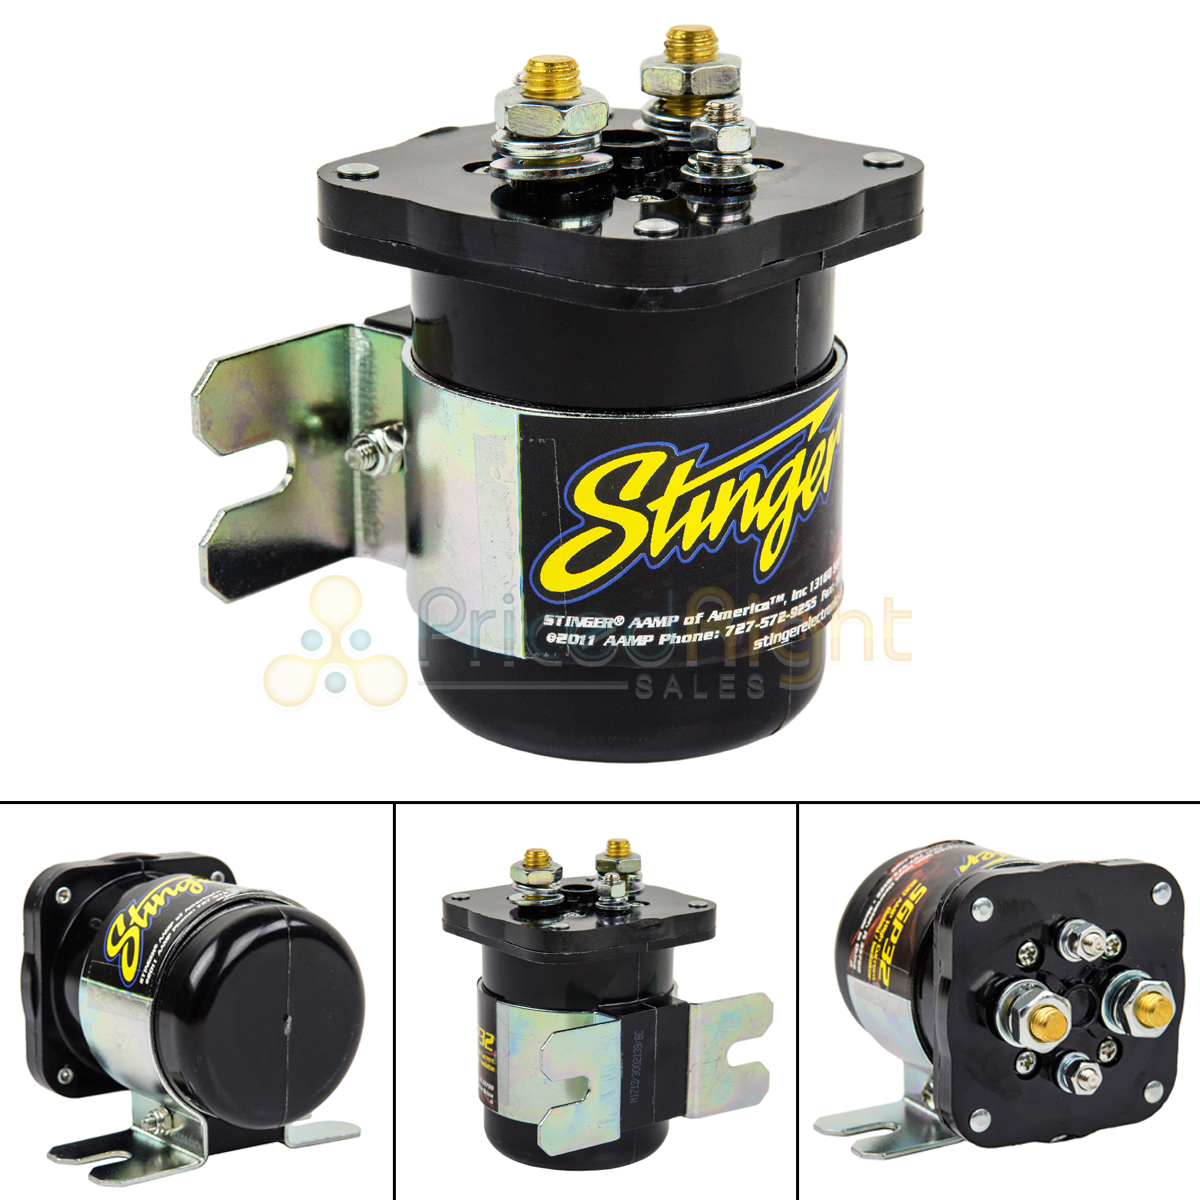 200 AMP HIGH CURRENT RELAY BATTERY ISOLATOR CAR AUDIO INSTALL 2 BATTERIES POWER